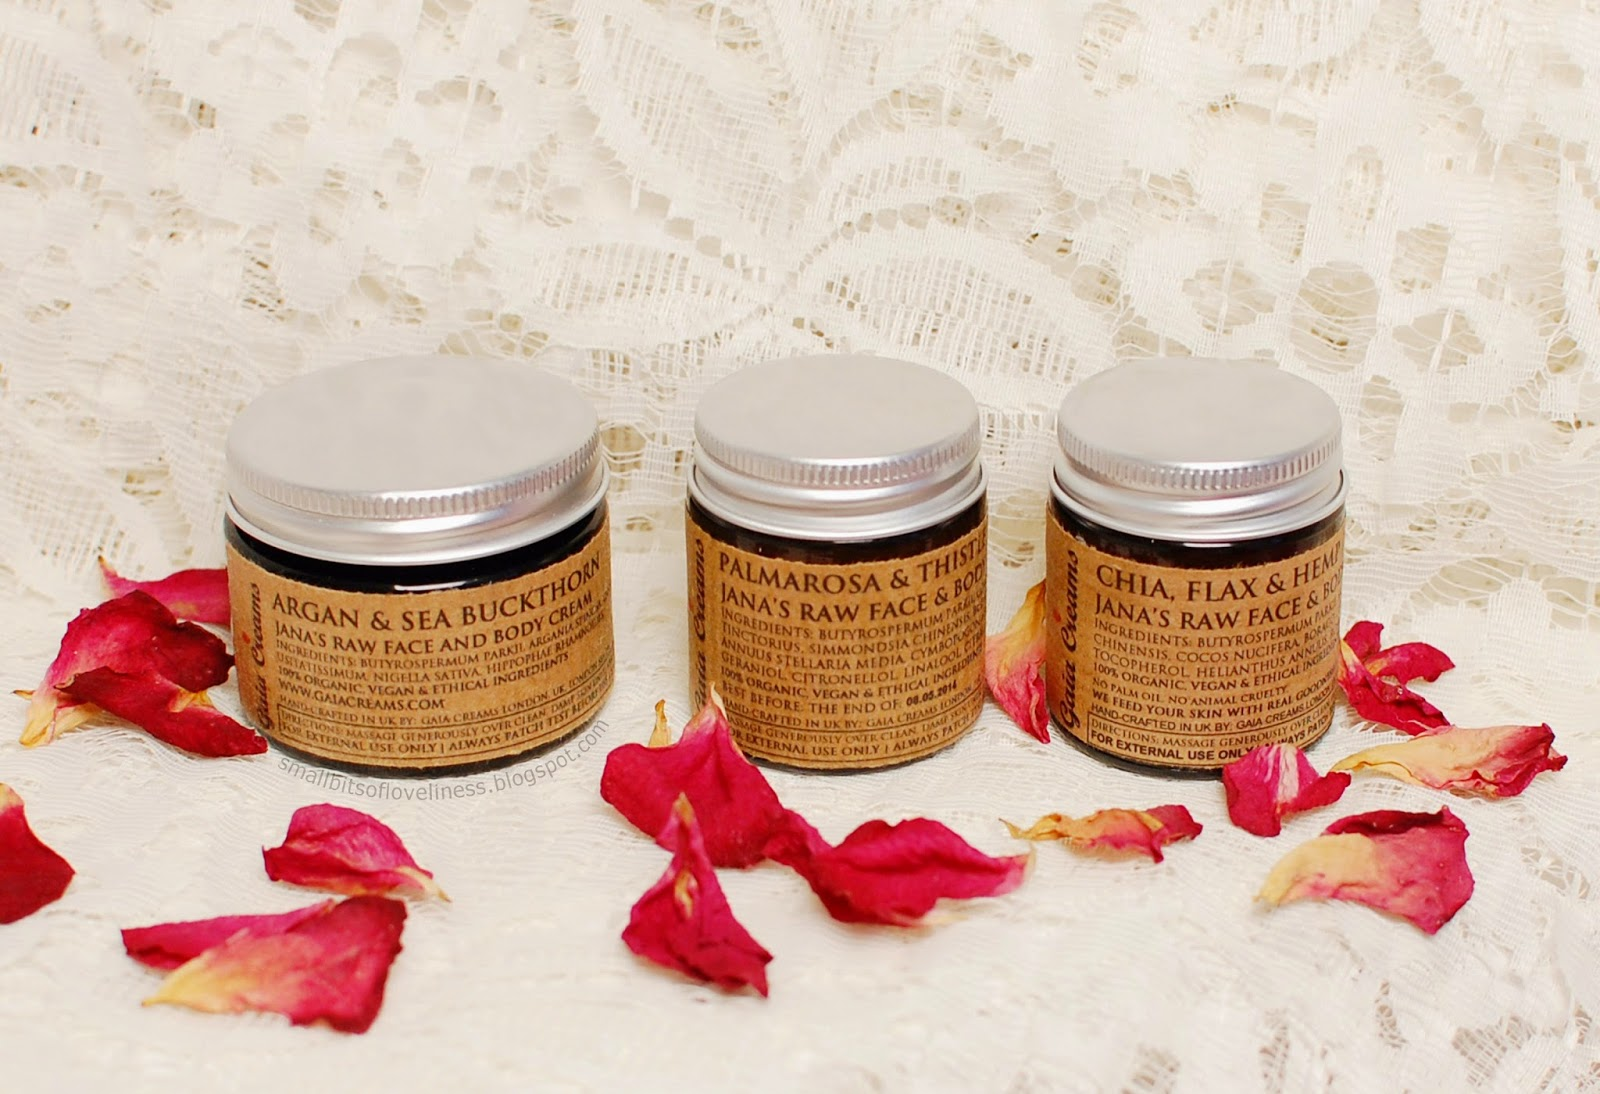 Gaia Creams Argan & Sea Buckthorn, Palmarosa & Thistle, Chia, Flax & Hemp Raw Face & Body Cream